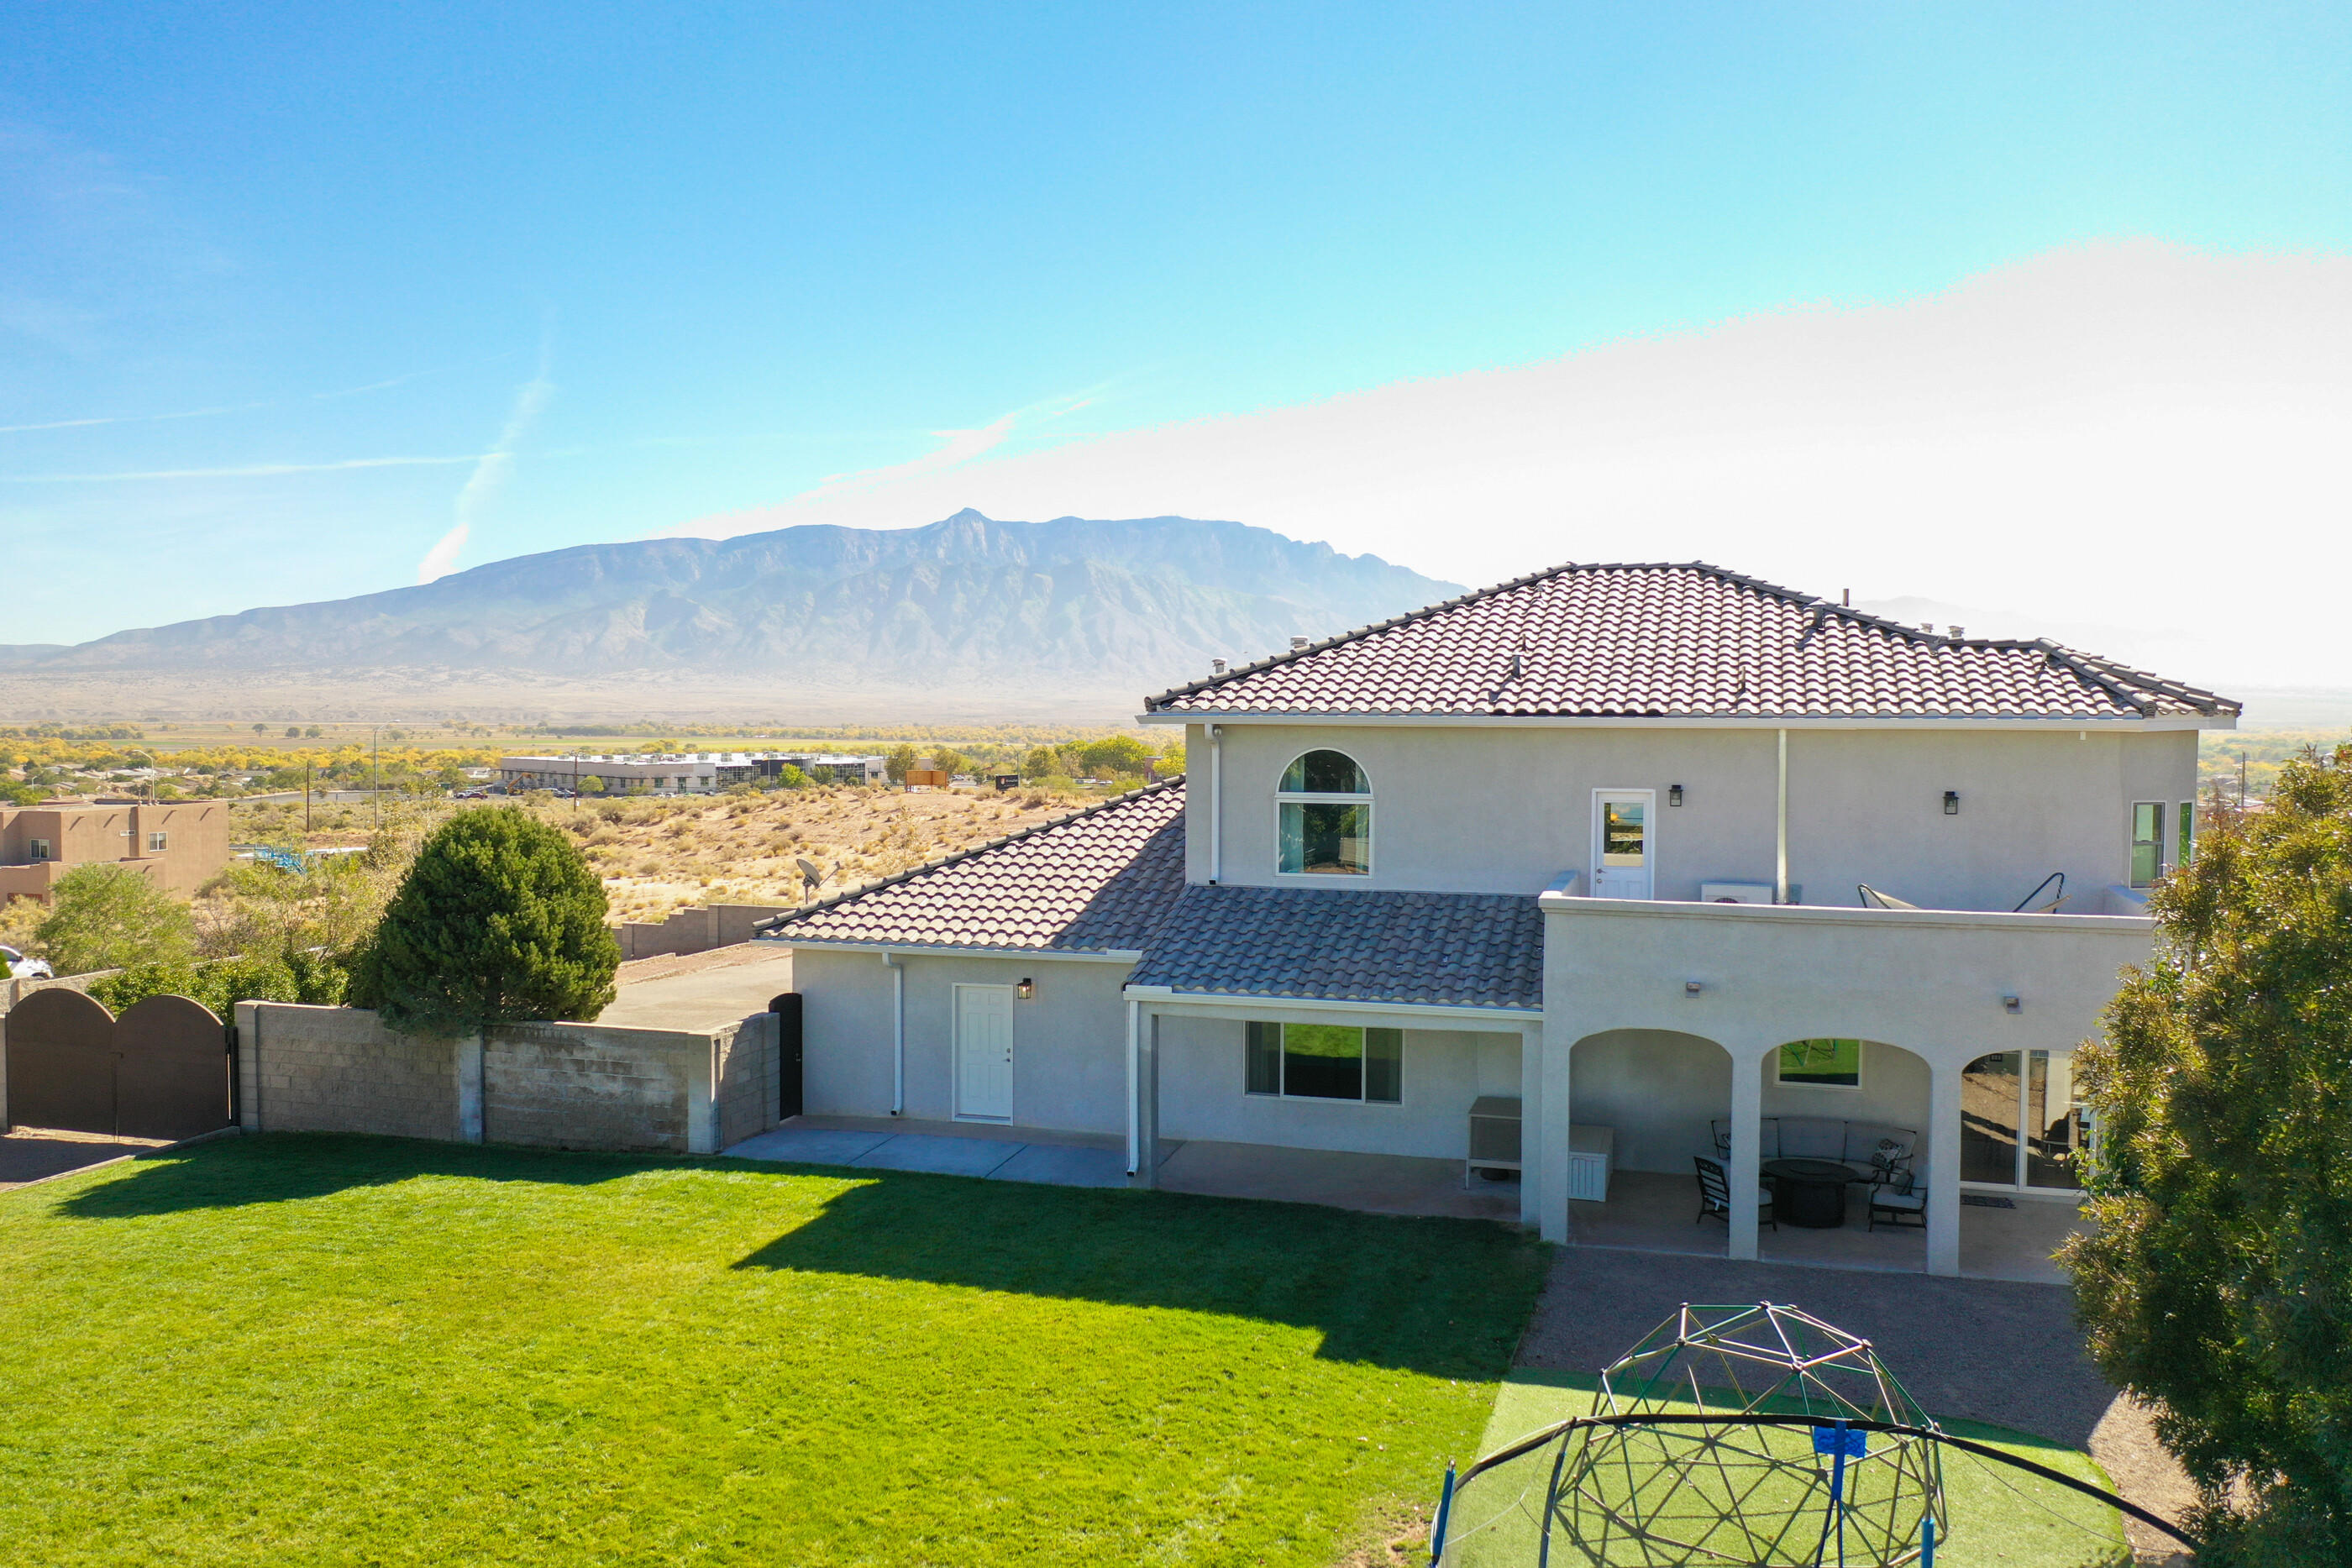 This beautiful, custom build is situated on an acre with stunning panoramic views in every direction. Mature trees surround a private, sanctuary-like backyard fit for a family. The secure dual-entry drive is gated and RV friendly. You are greeted with a two story entry, travertine flooring and grand staircase. The kitchen is appointed with a six burner stove top, double wall ovens, SS appliances, granite and marble backsplash. The owner's suite is luxurious with custom walnut cabinetry, dedicated office space and second floor laundry. The newly renovated home has been freshly painted and has new carpet throughout. This property is an absolute must see.